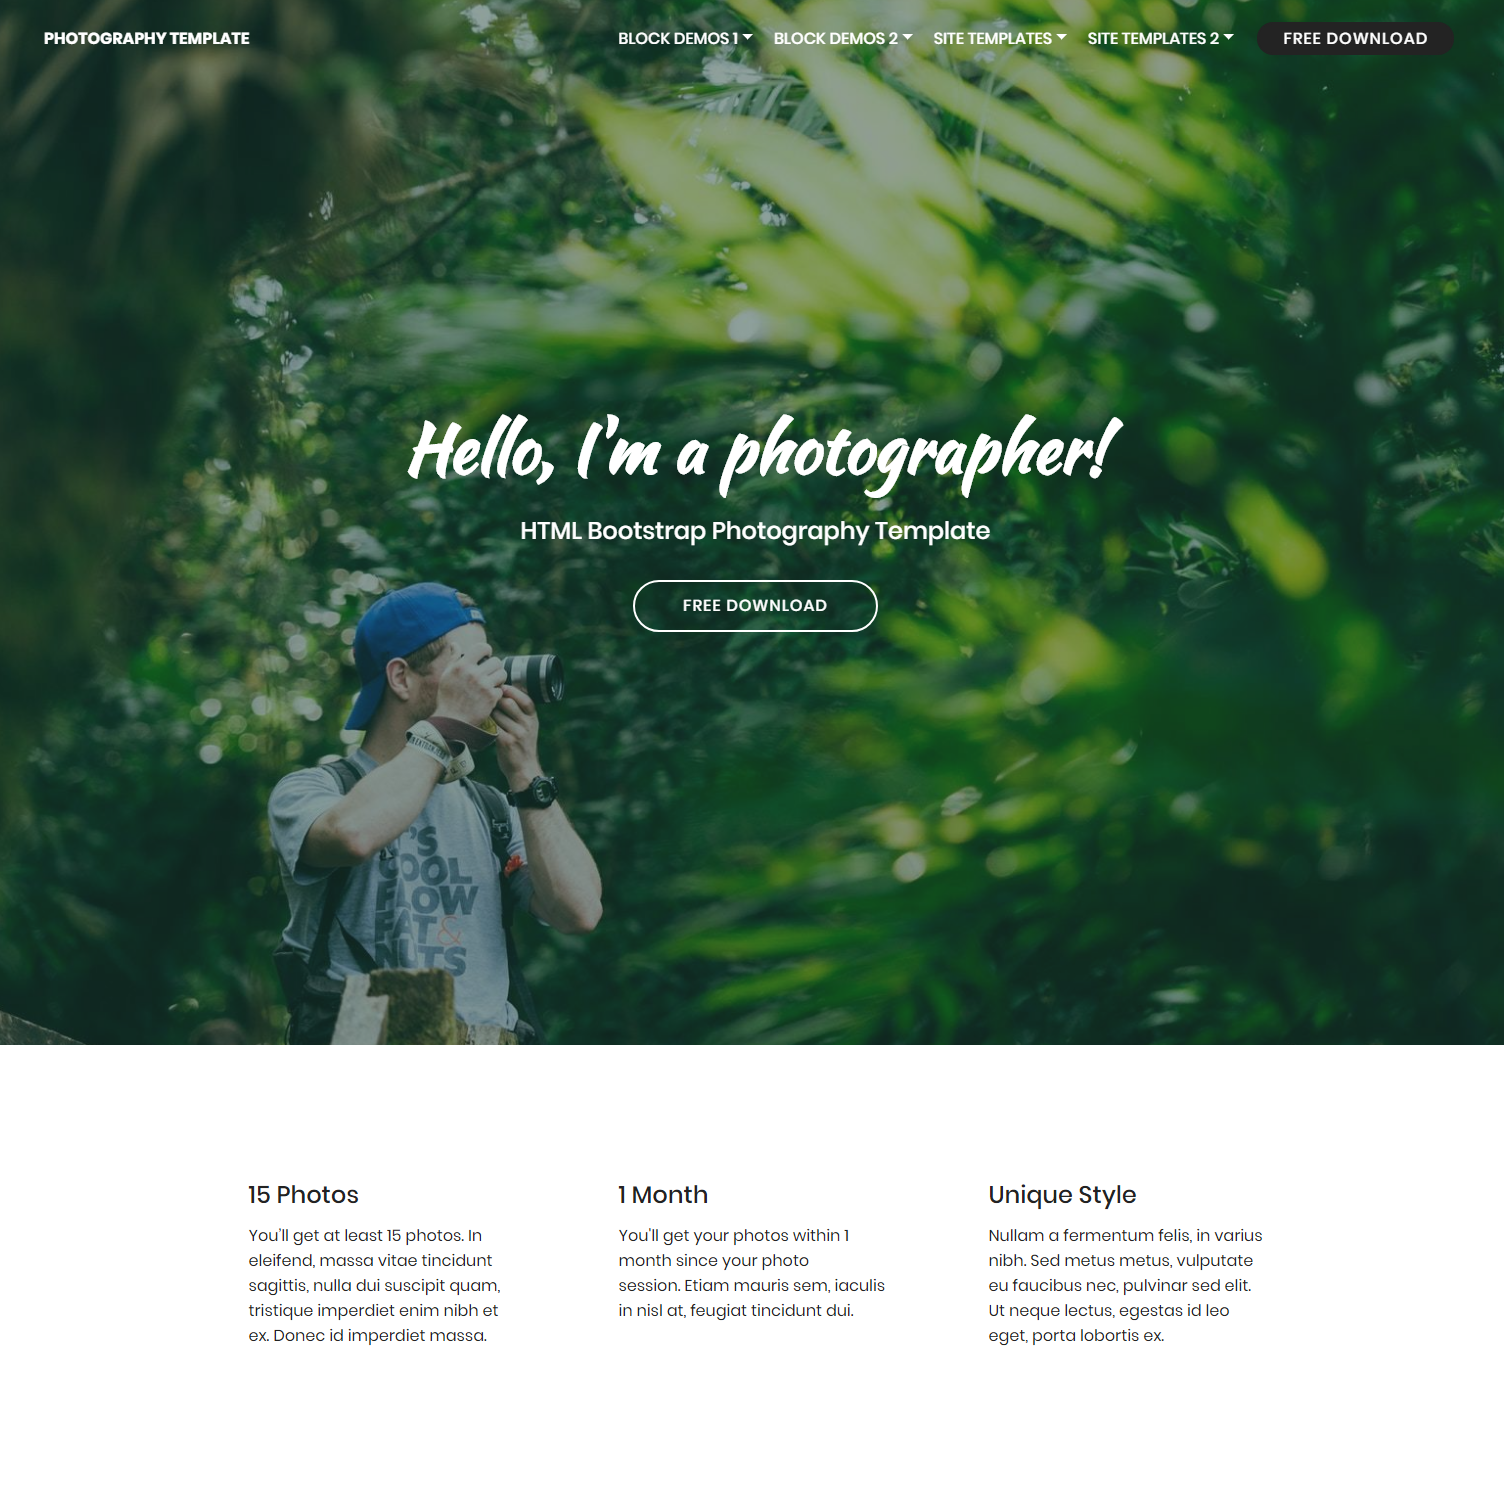 Free Download Bootstrap Photography Templates